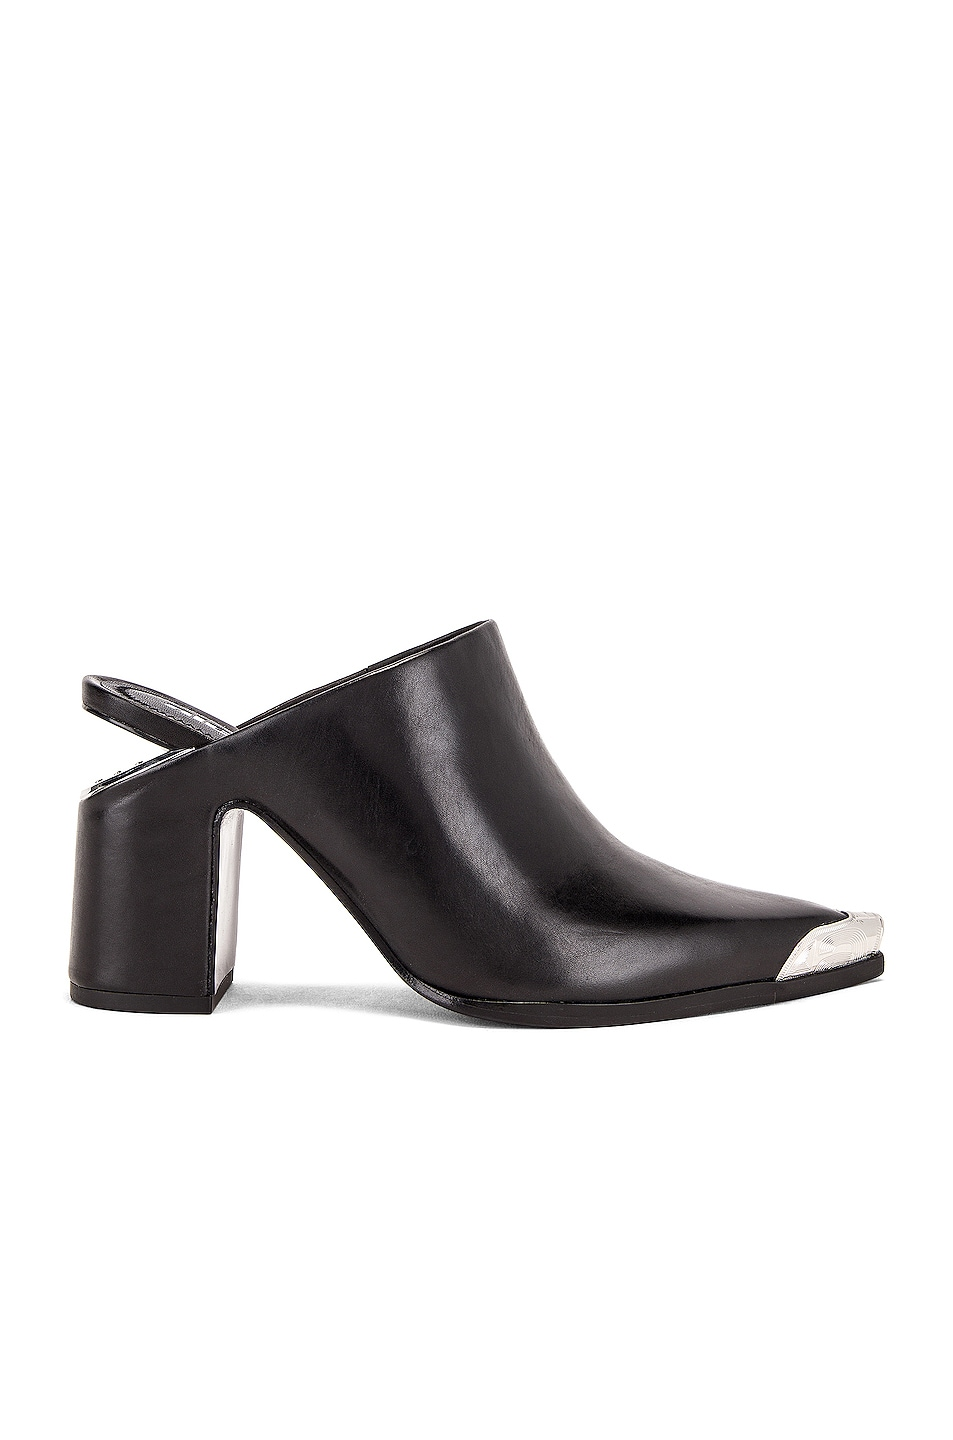 Image 1 of Alexander Wang Su Calf Mule in Black